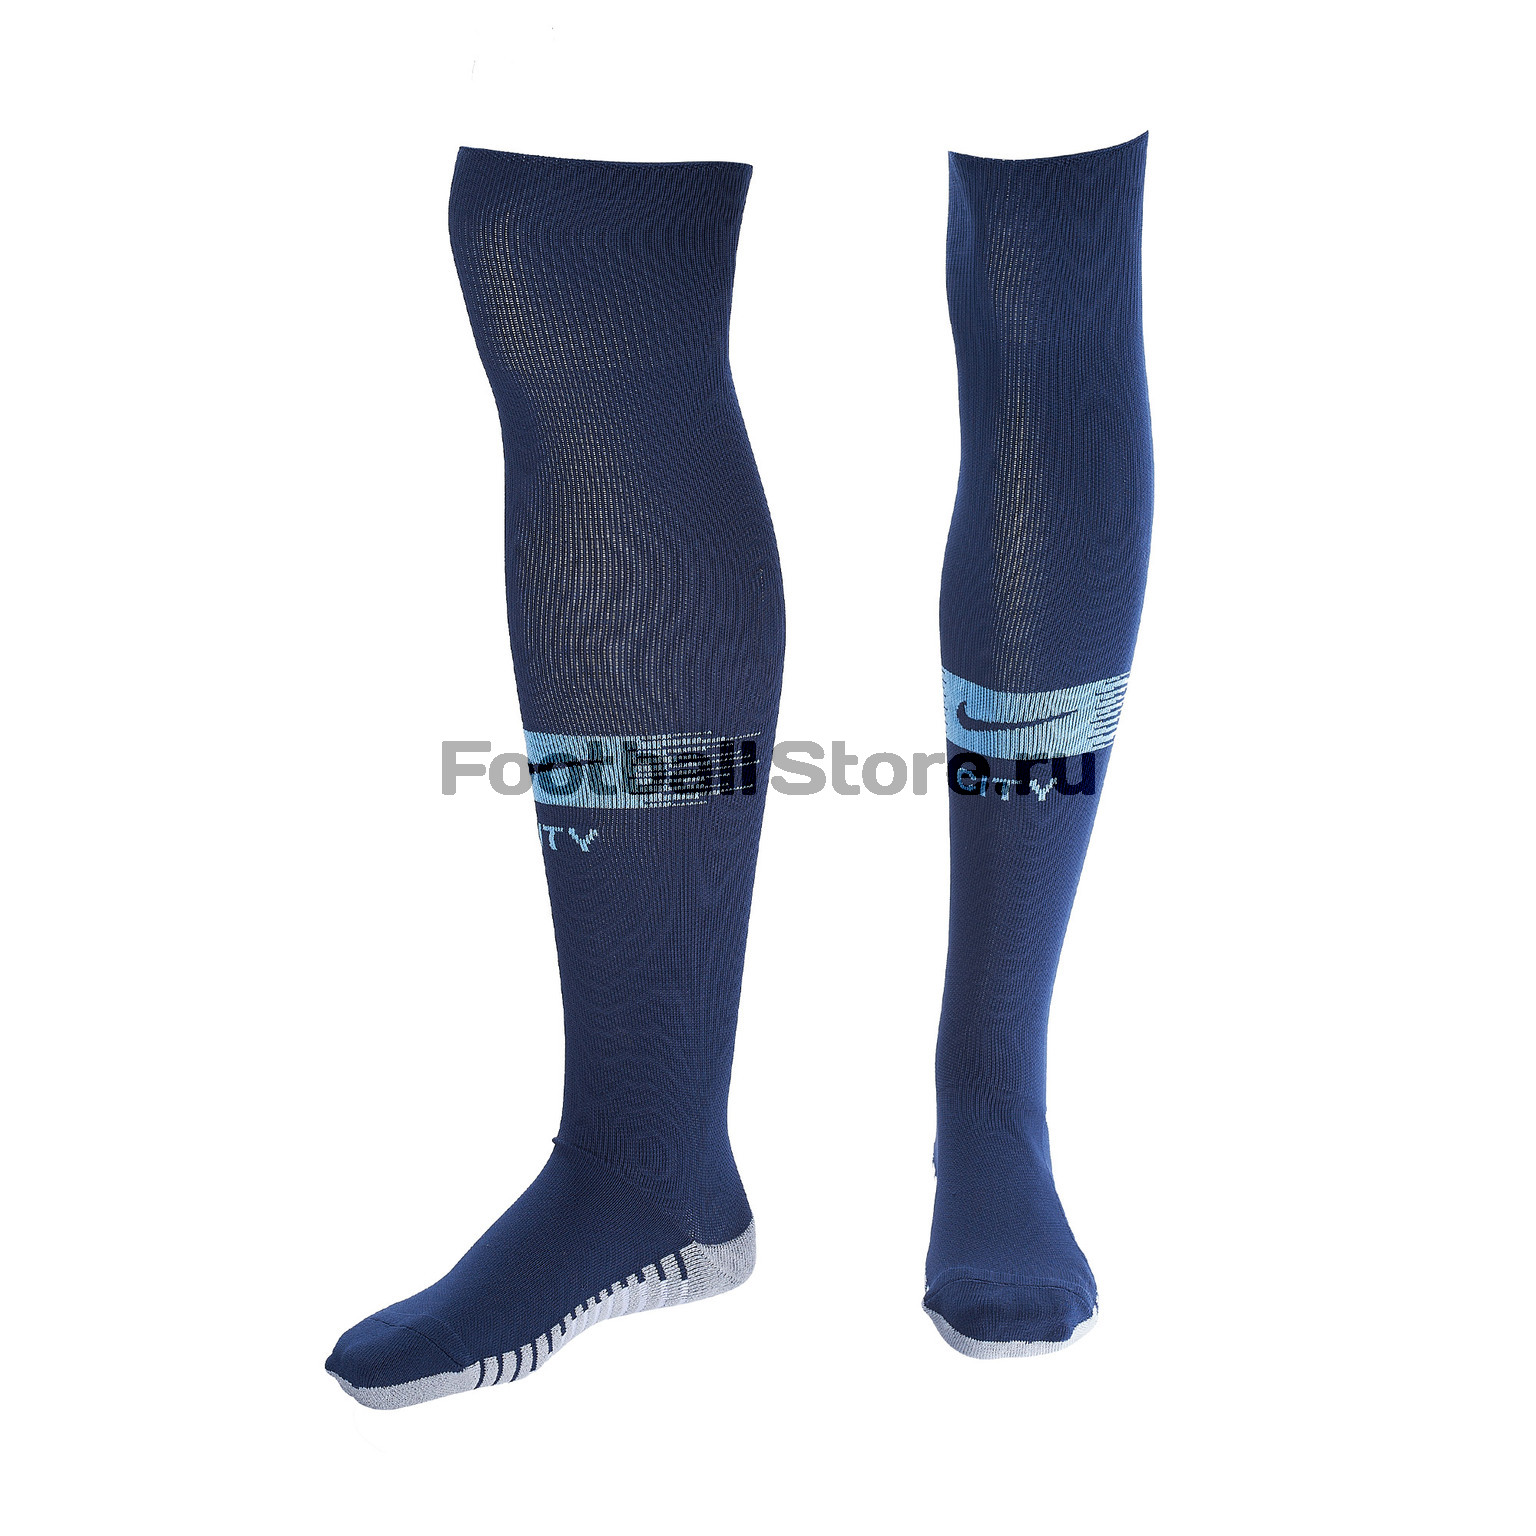 Гетры Nike Manchester City Stadium Sock SX6354-410 все цены